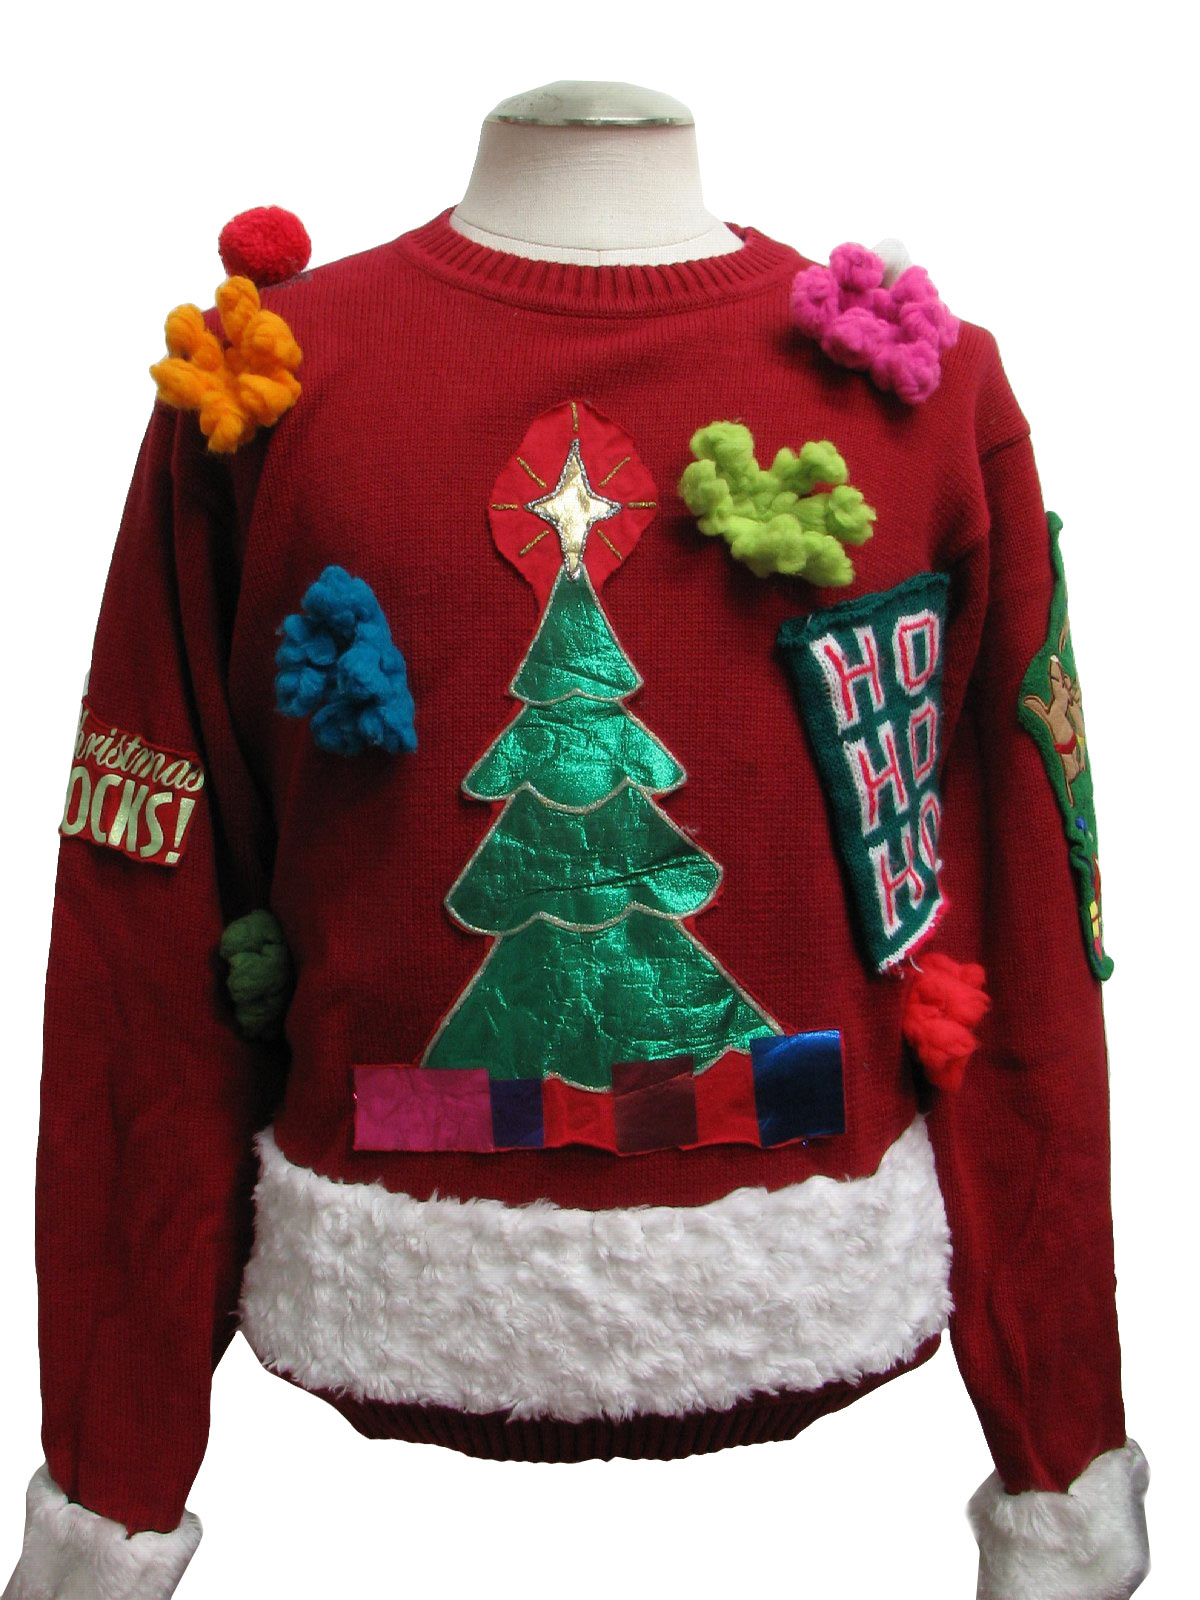 Make Ugly Christmas Sweater Pictures Wallpapers